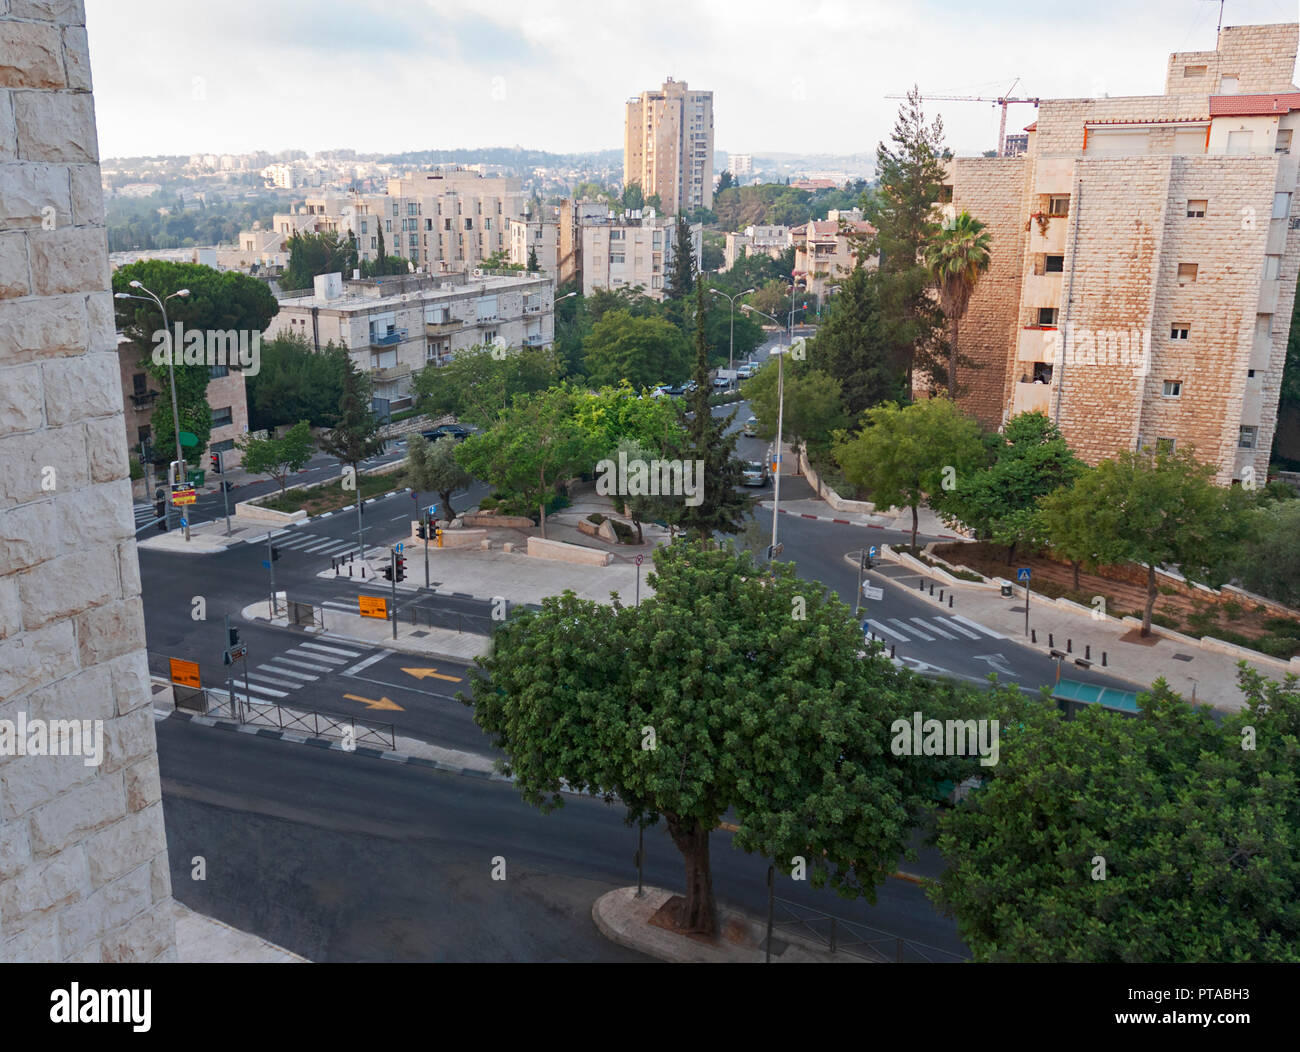 a view of downtown jerusalem at dawn from a hotel window above the deserted streets - Stock Image